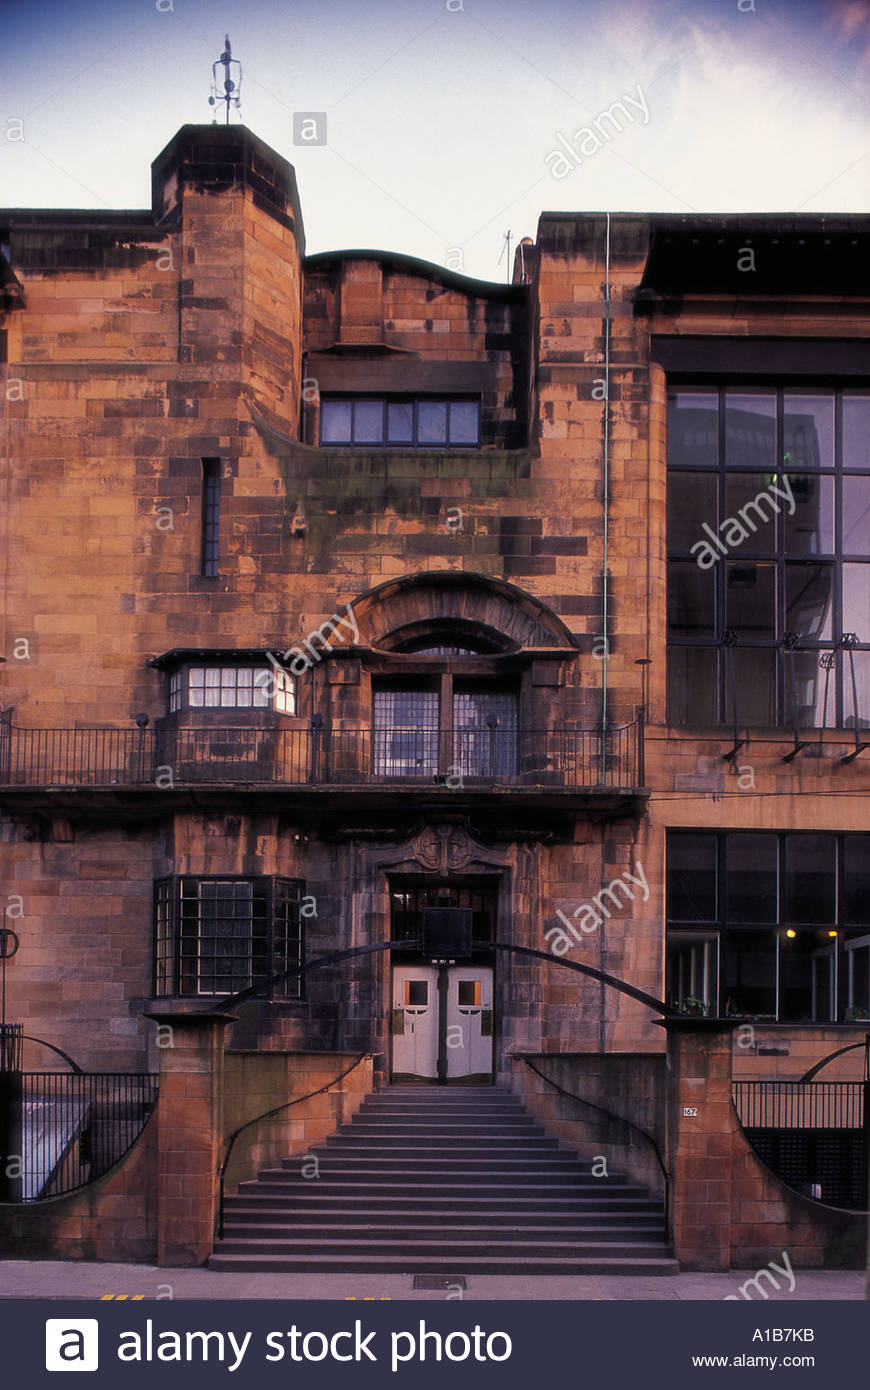 THE MAIN ENTRANCE TO THE GLASGOW SCHOOL OF ART RENFIELD STREET IN THE CITY CENTRE OF GLASGOW - Stock Image